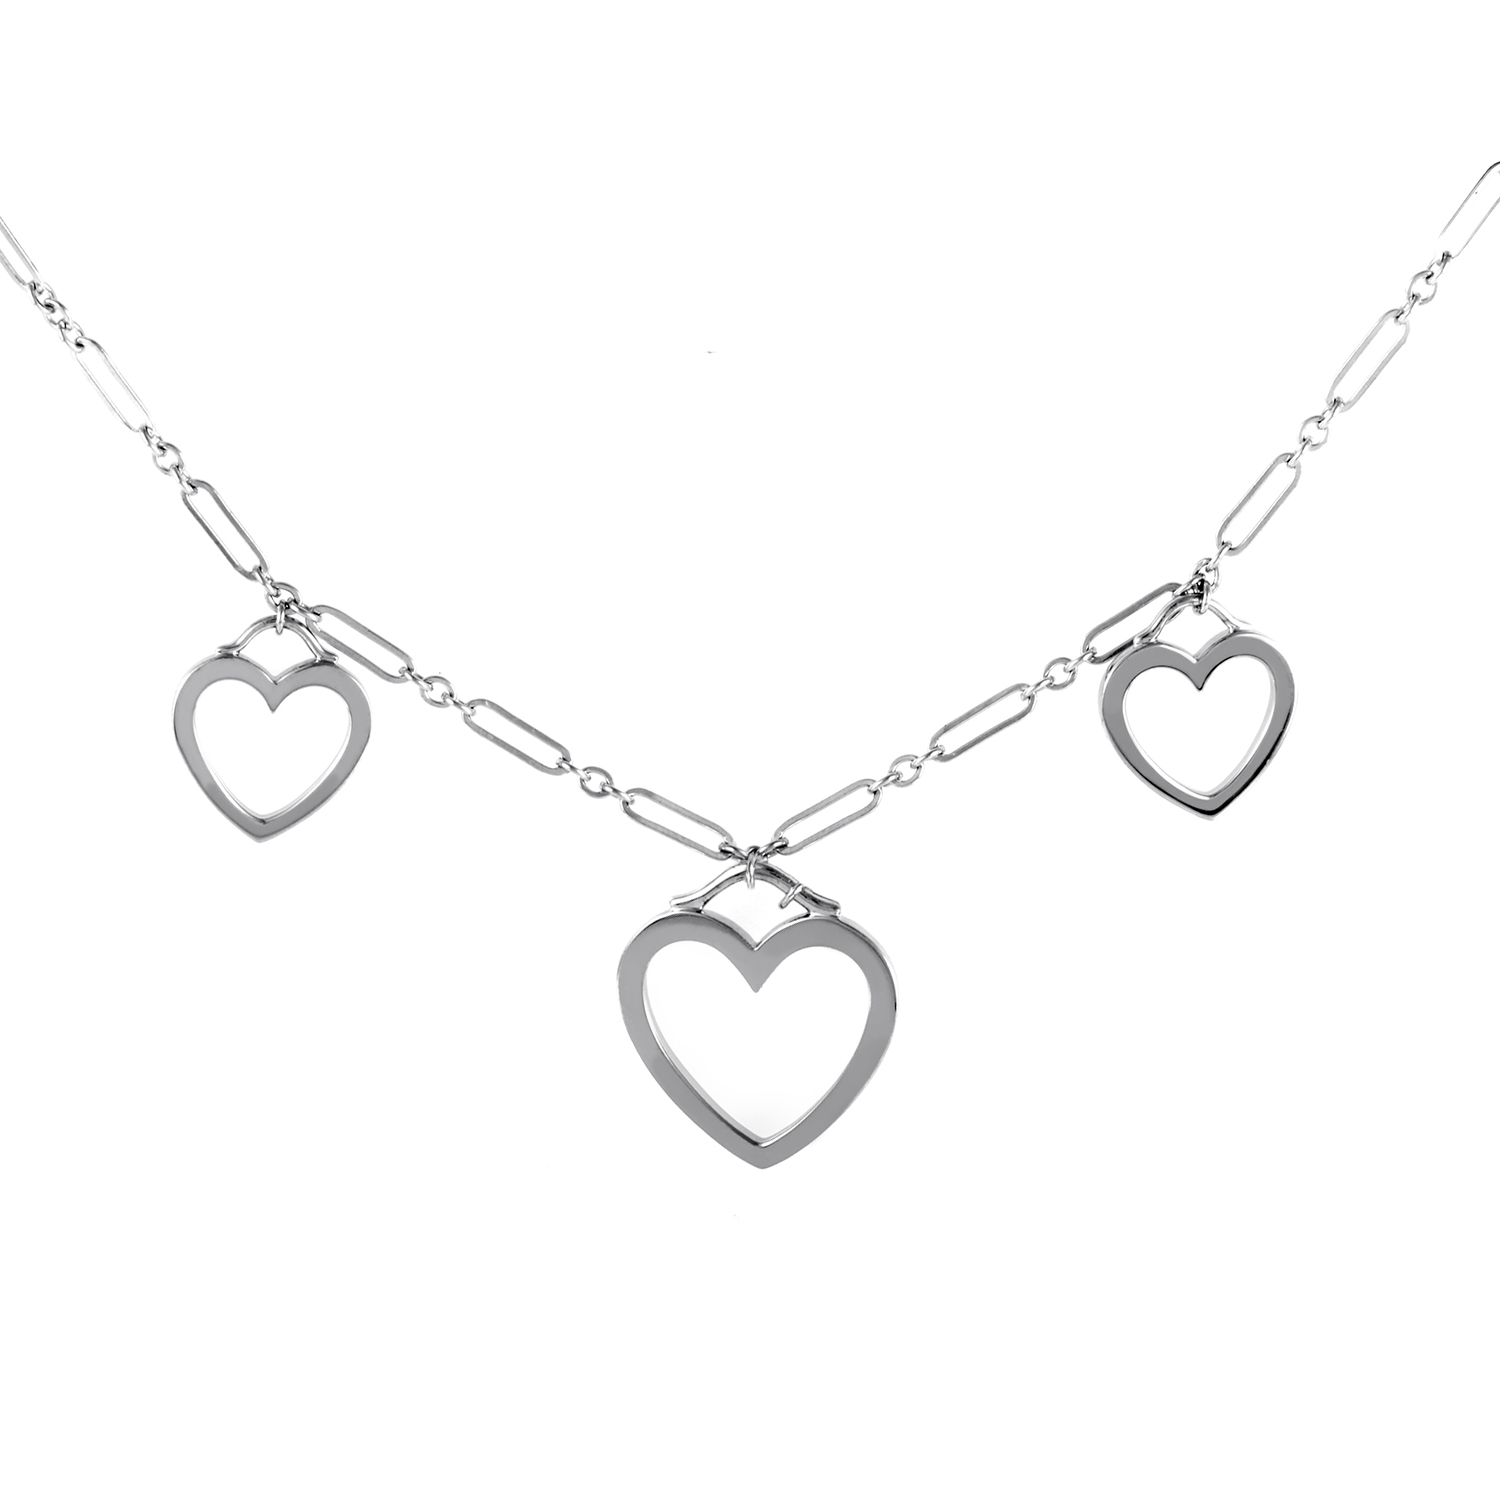 Tiffany & Co. Women's 18K White Gold Triple Sentimental Heart Necklace